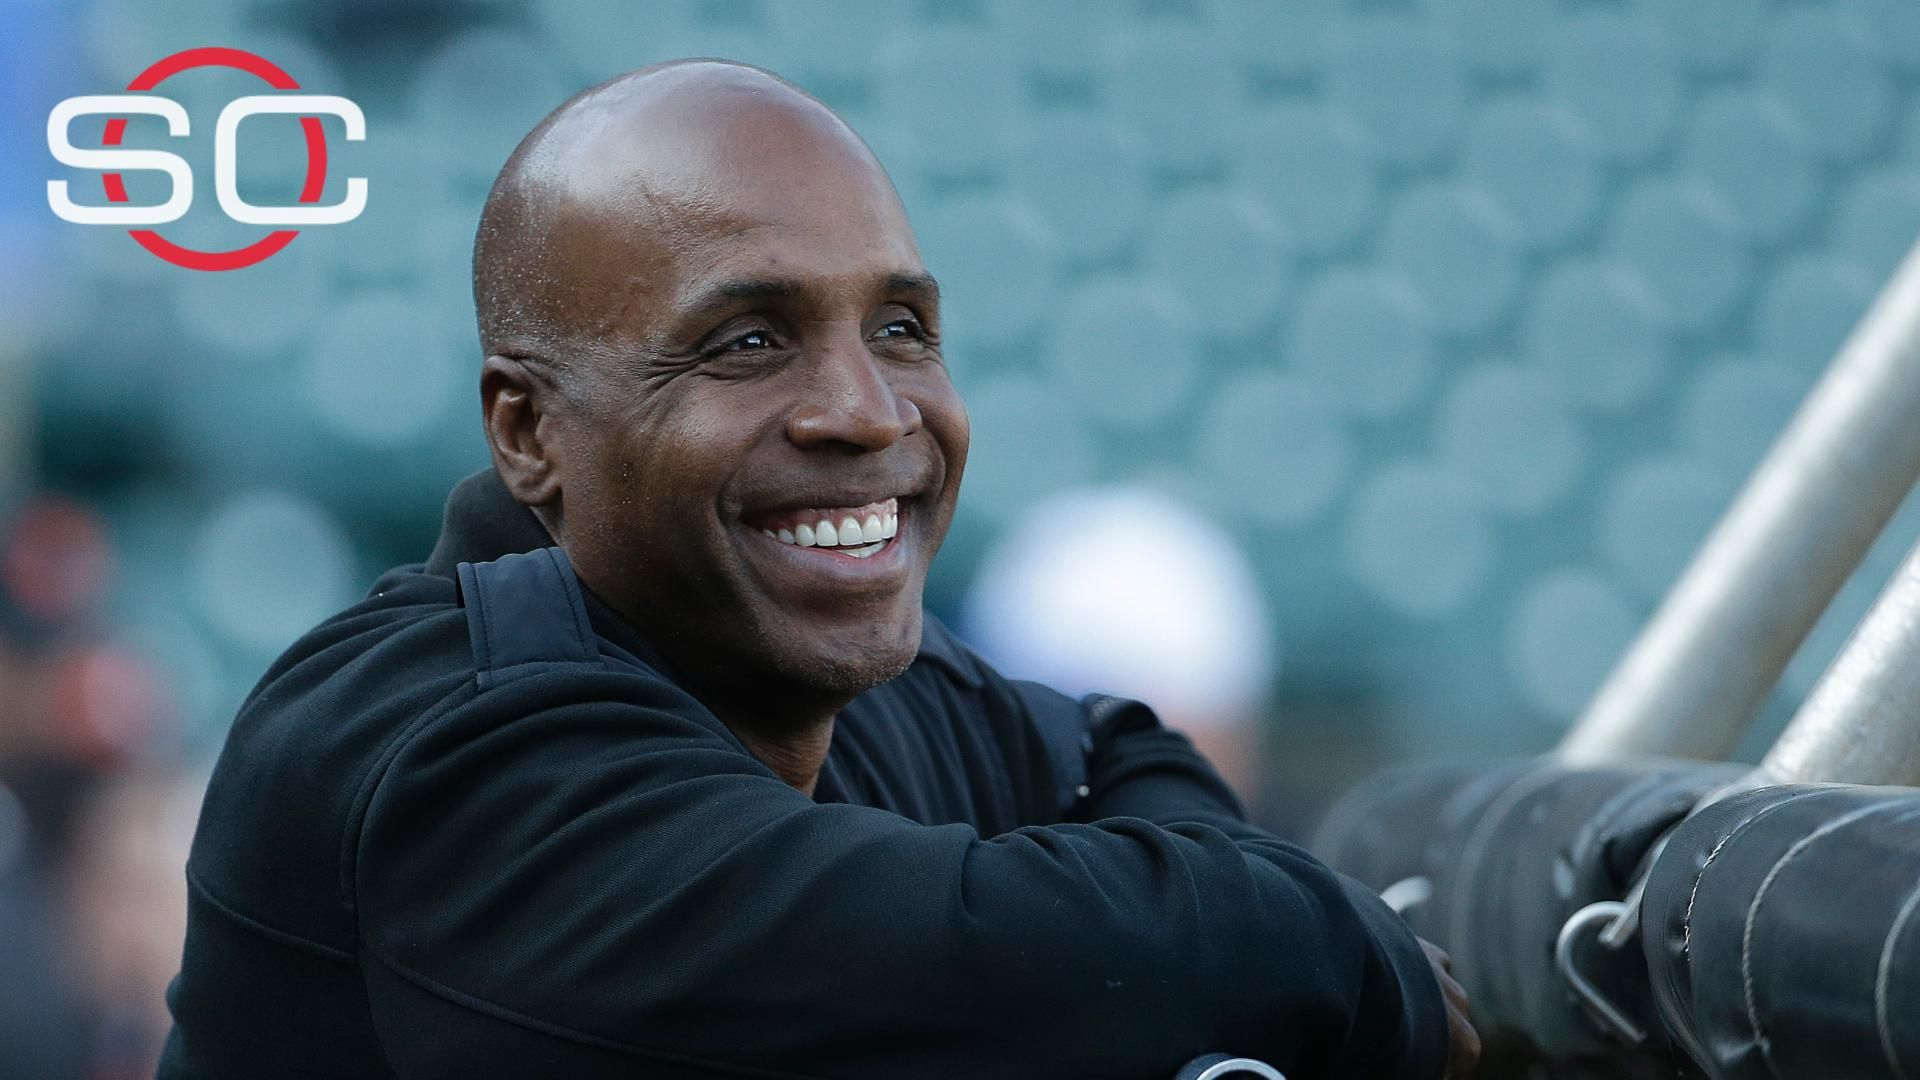 https://secure.espncdn.com/combiner/i?img=/media/motion/2015/1130/dm_151130_barry_bonds_marlins/dm_151130_barry_bonds_marlins.jpg